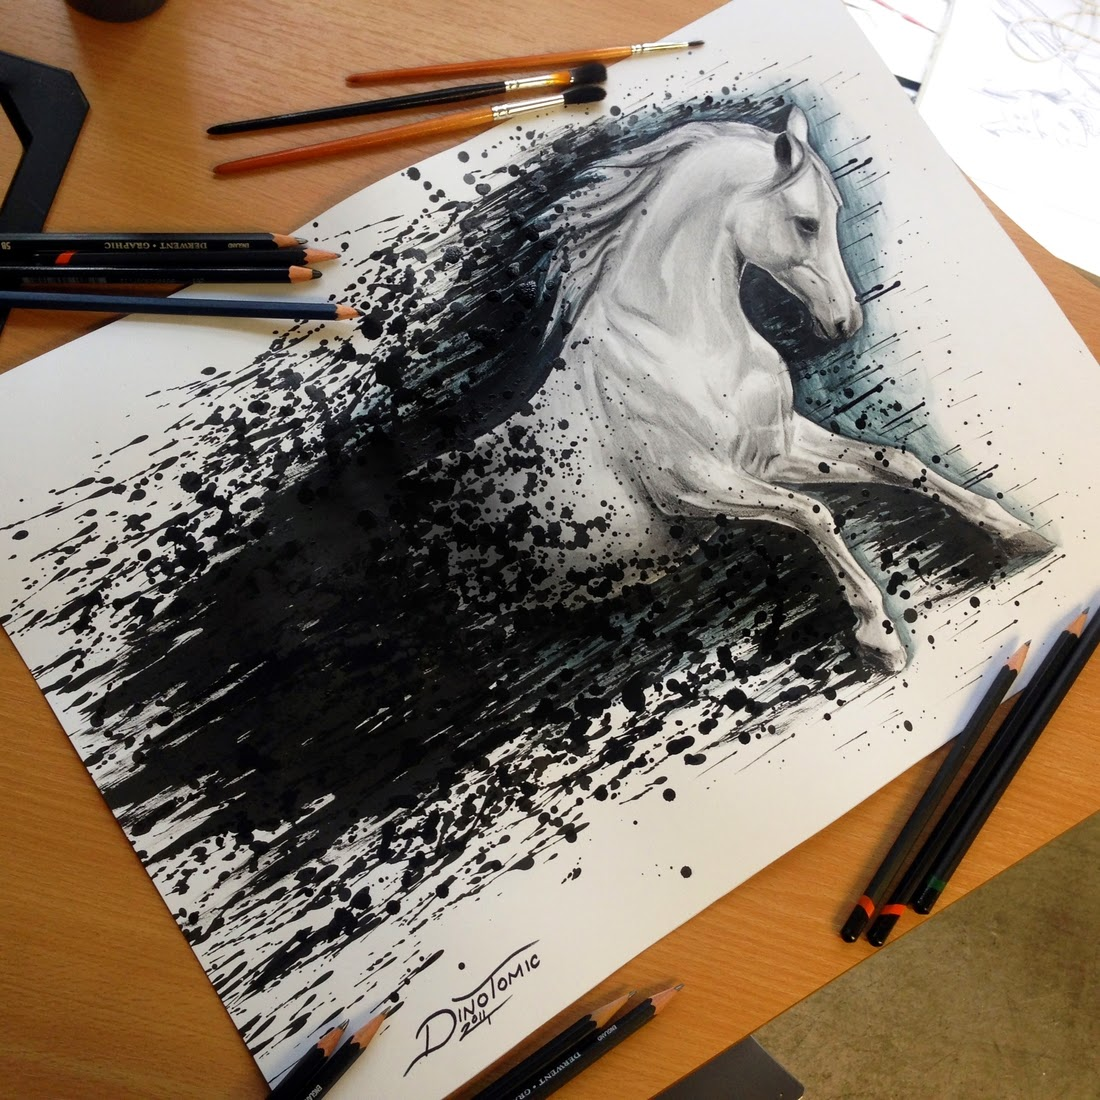 10-Horse-Splatter-Dino-Tomic-AtomiccircuS-Mastering-Art-in-Eclectic-Drawings-www-designstack-co